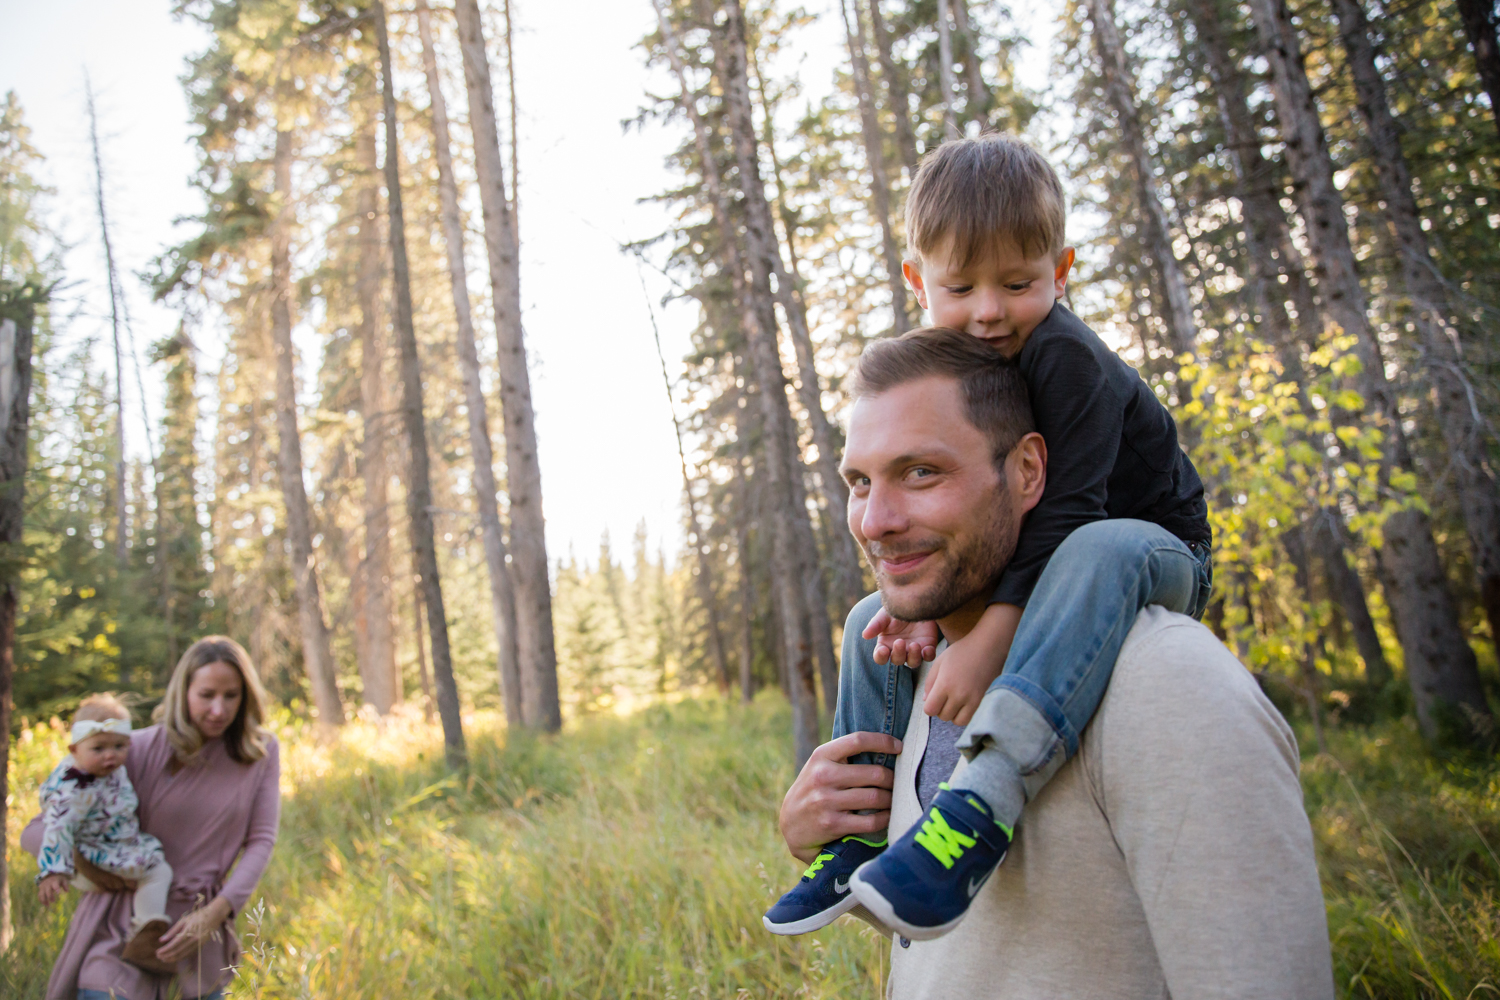 family photography, together in the forest, Griffith woods.